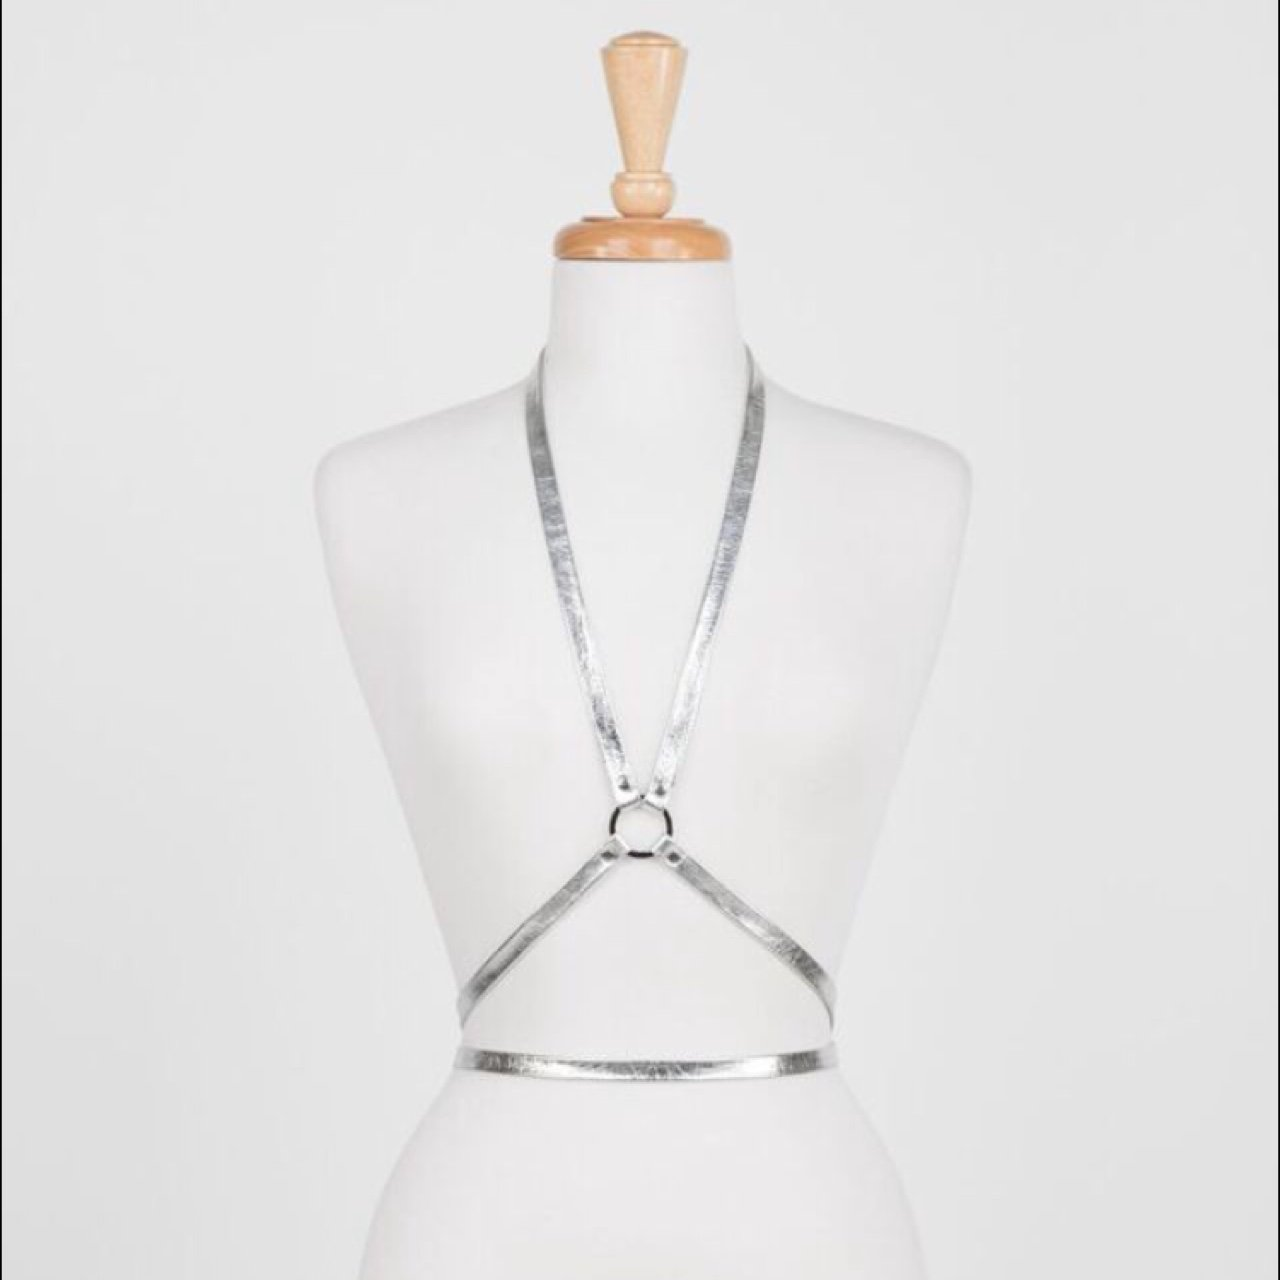 The Noelle Harness